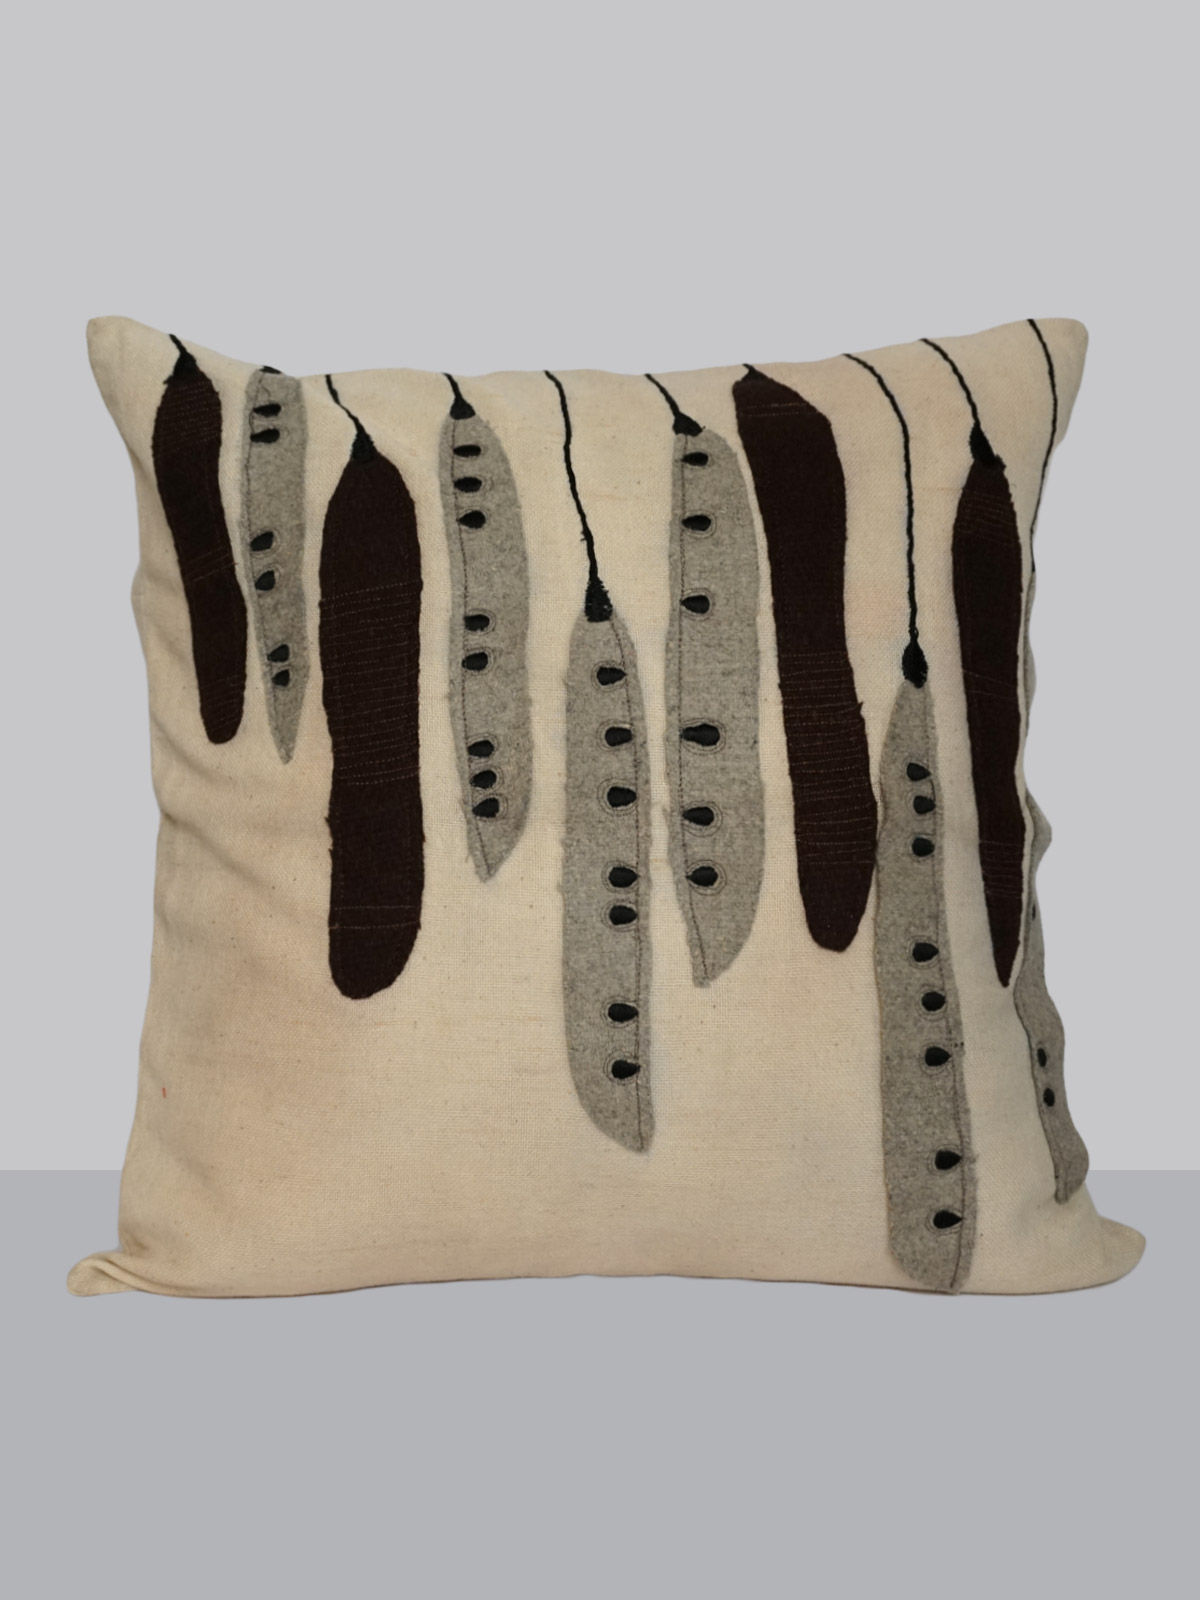 Off-white felt patchwork emroidered cotton cushion cover